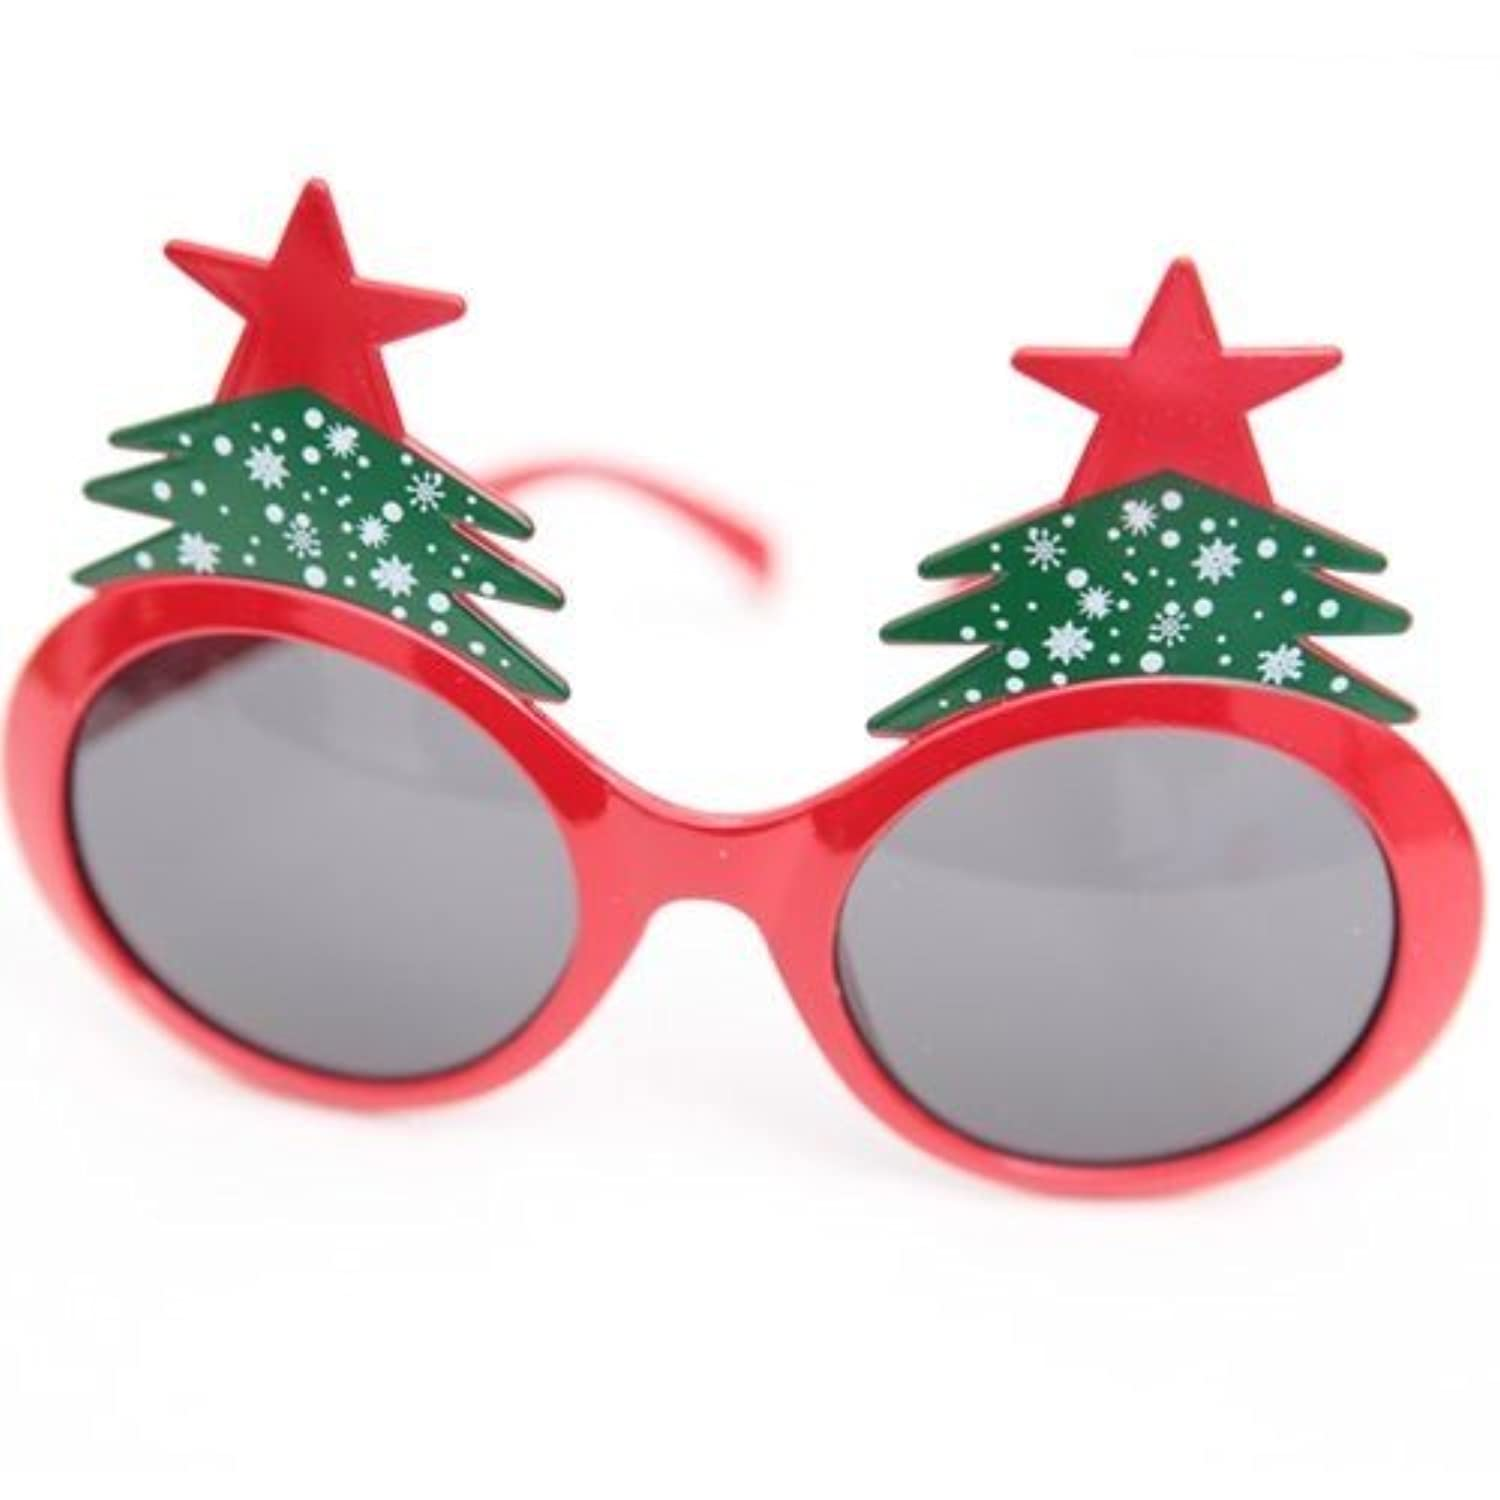 Fun Party Toy - Christmas tree glasses (red)